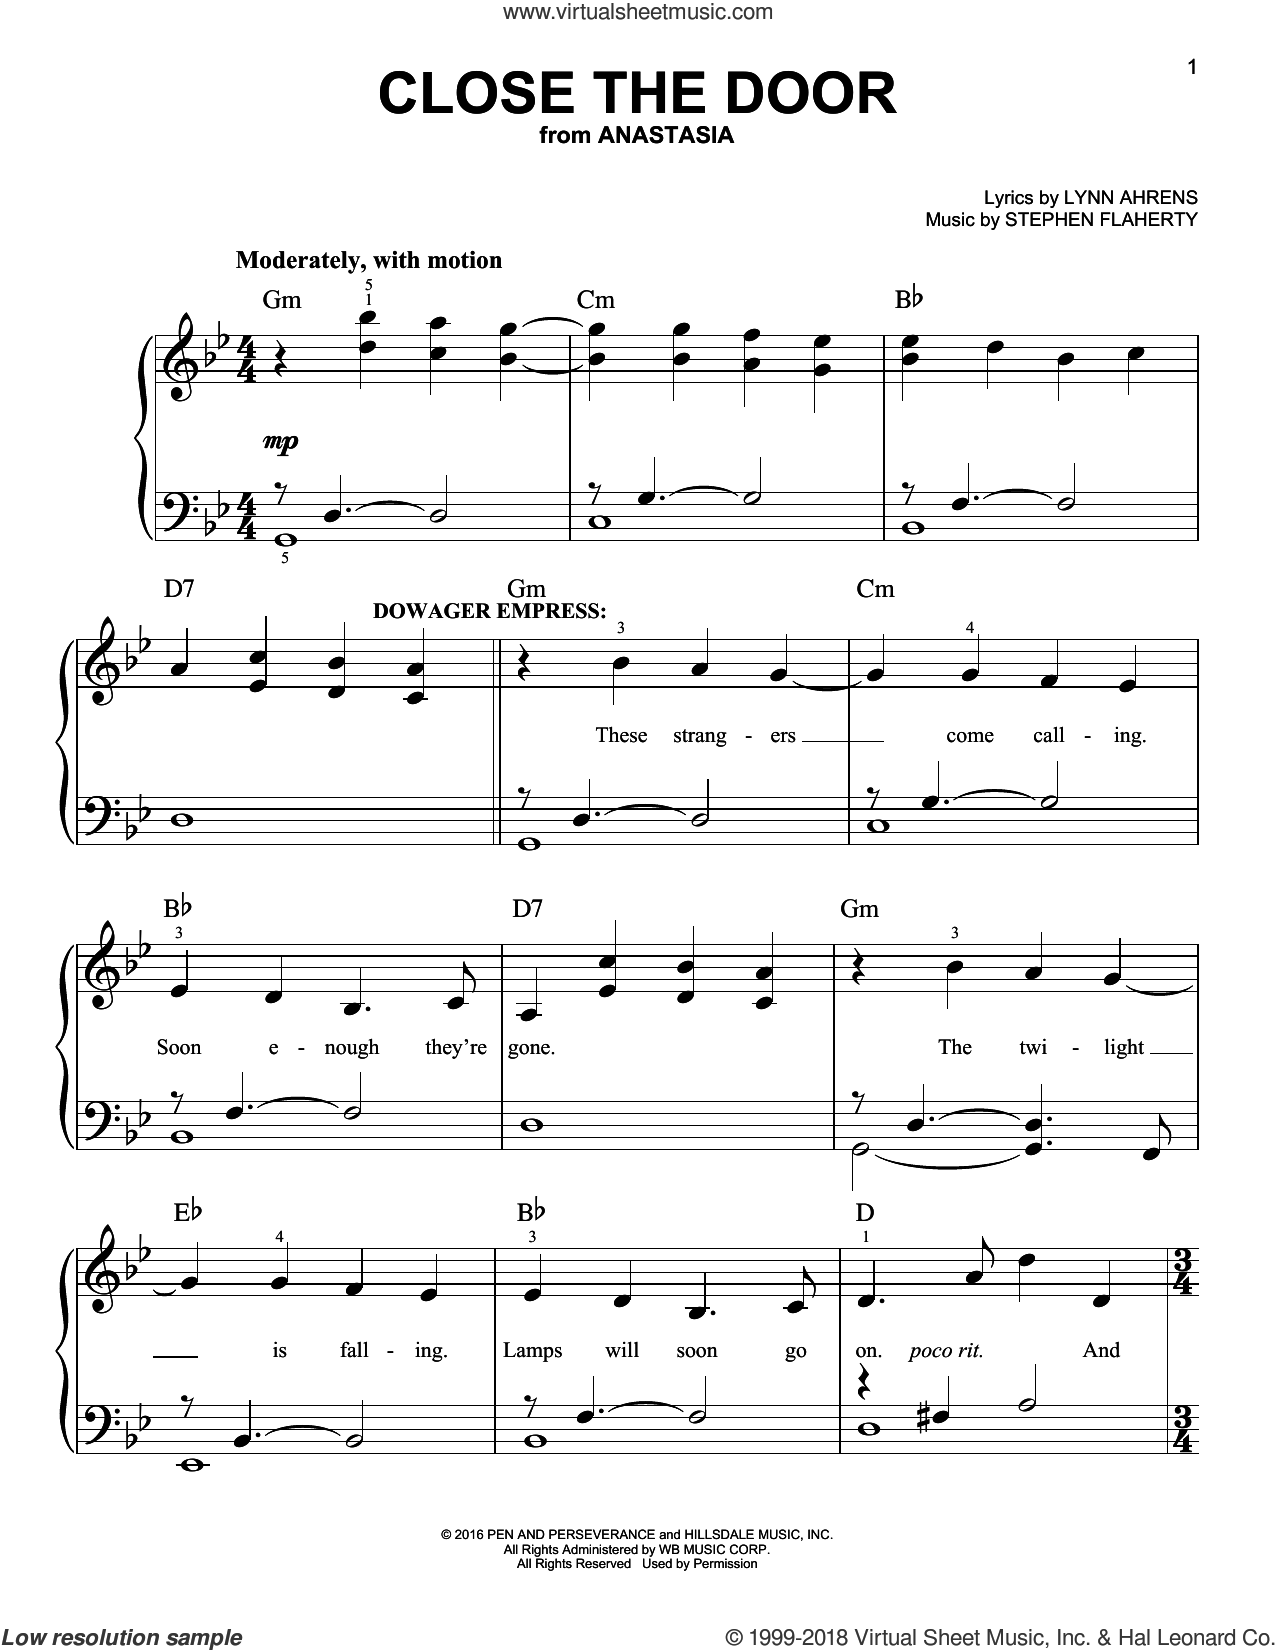 Close The Door sheet music for piano solo by Stephen Flaherty and Lynn Ahrens, easy skill level